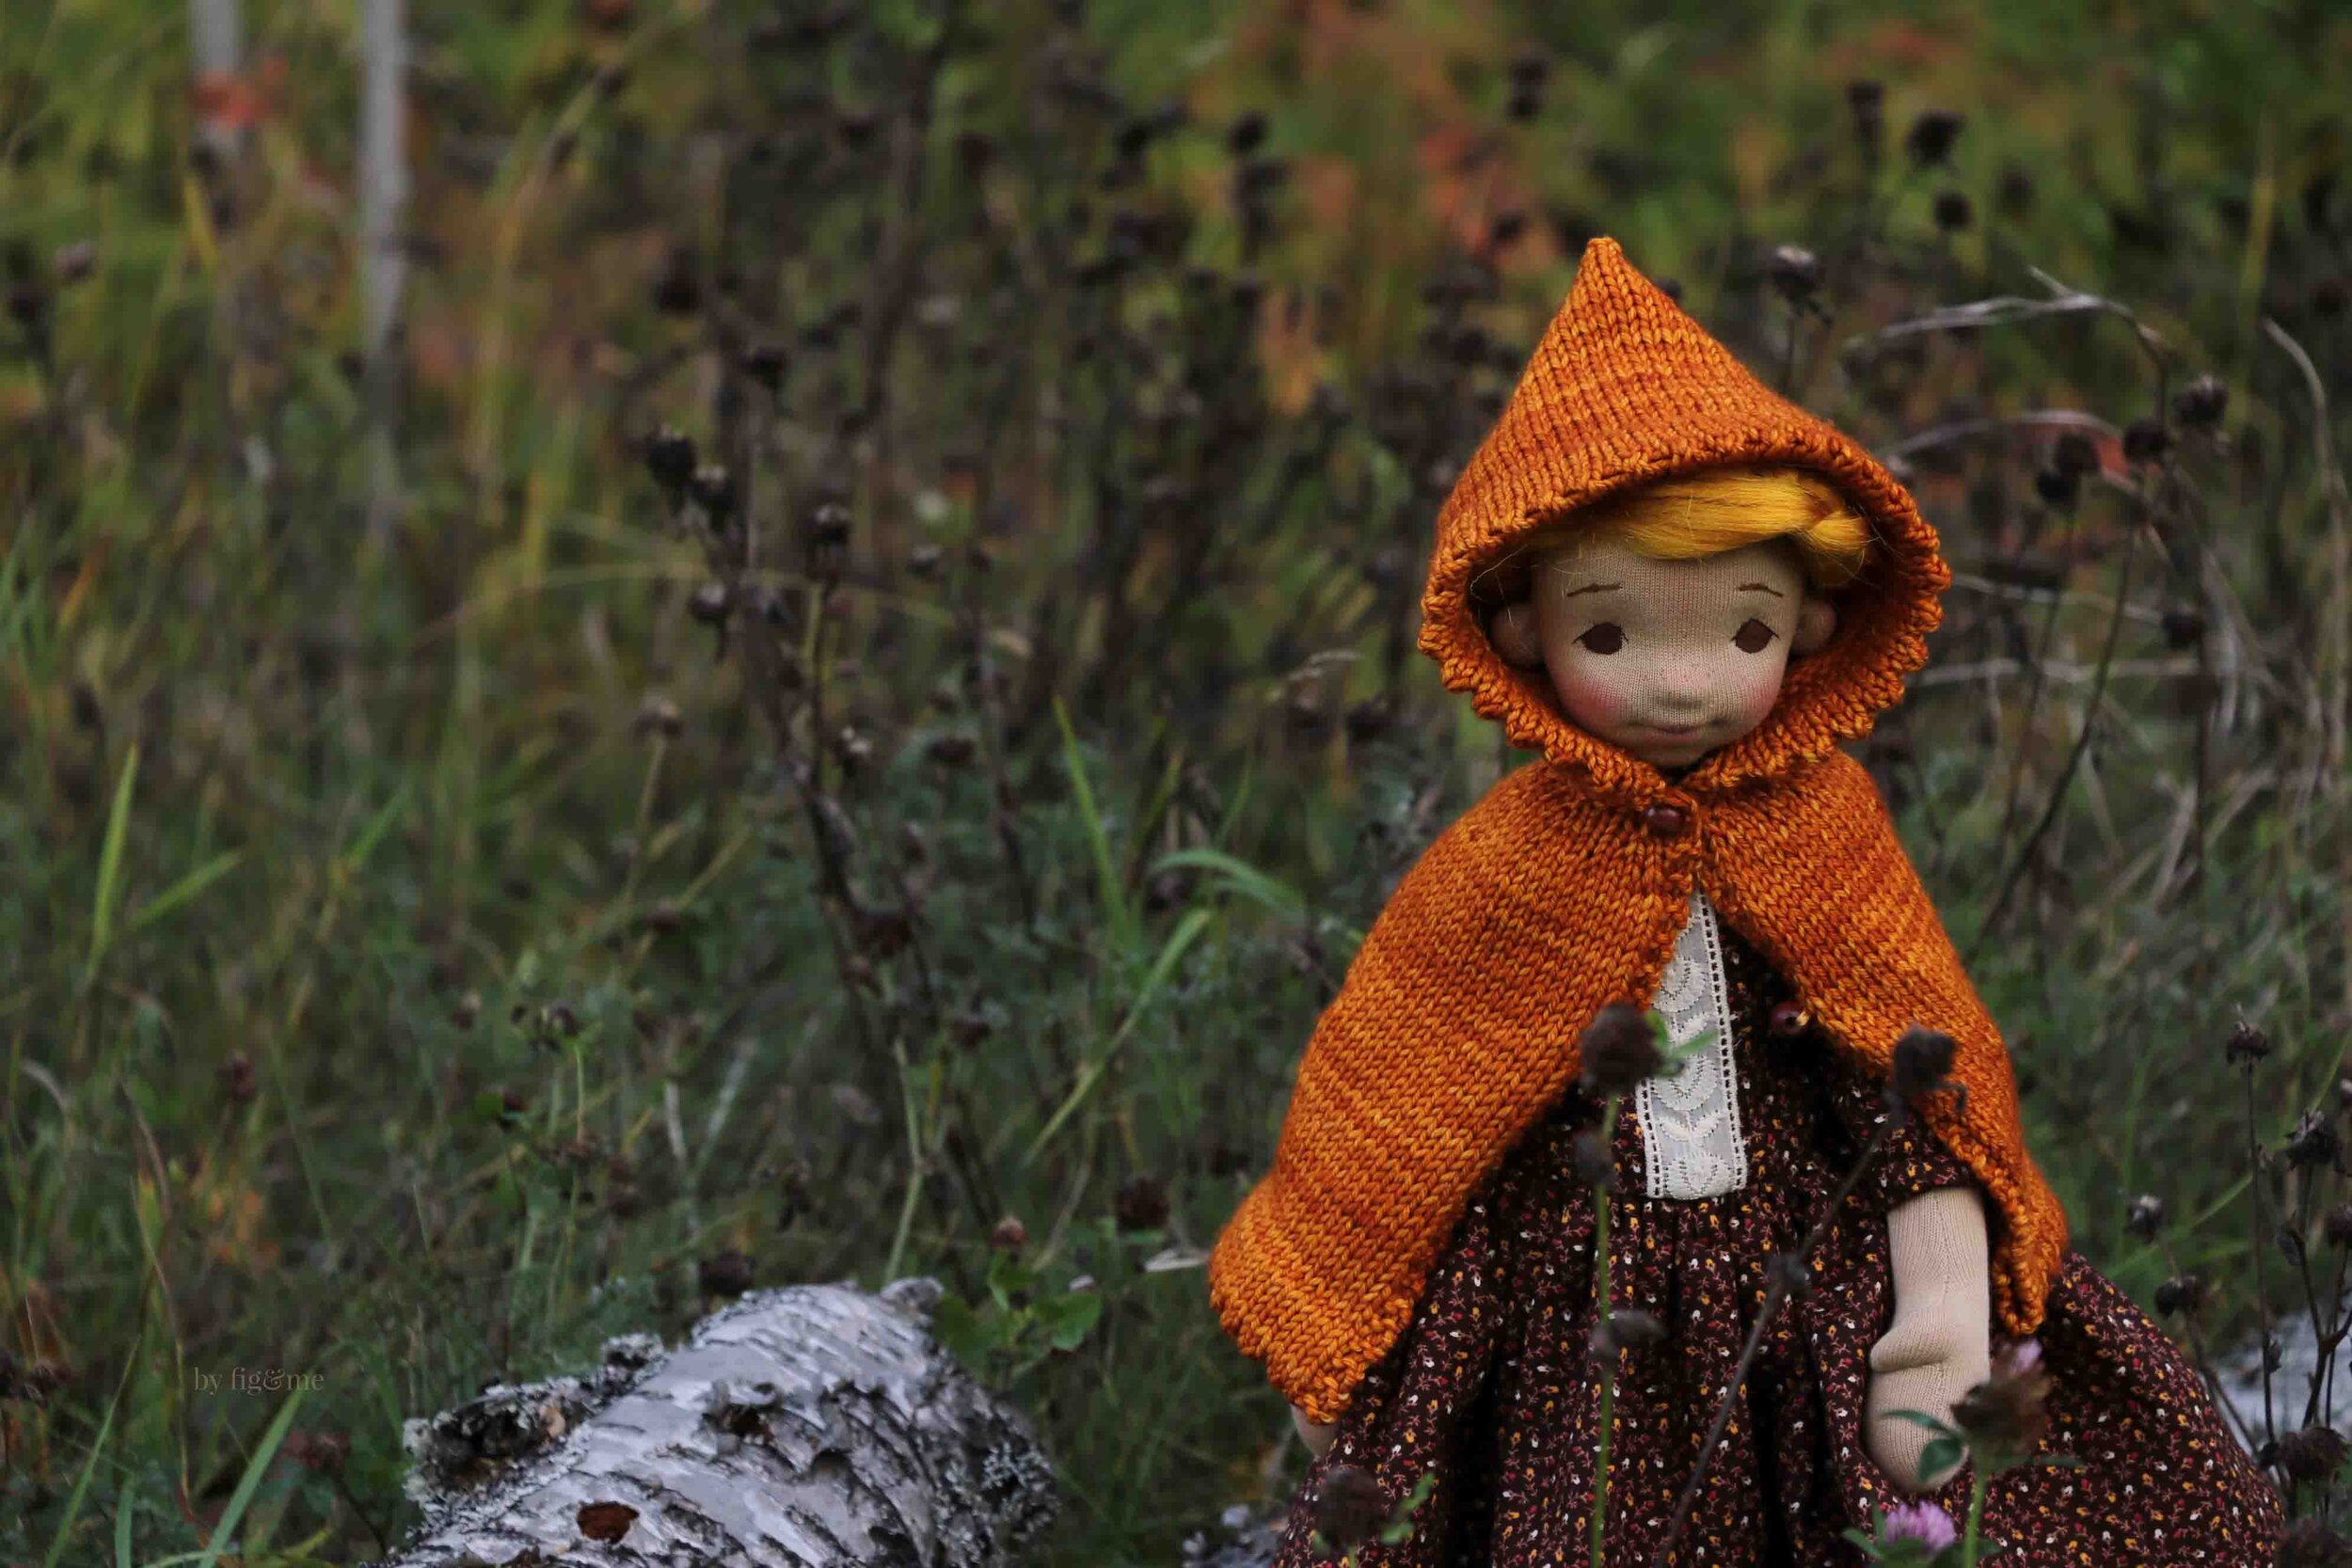 Winona, a time traveller doll by fig and me.